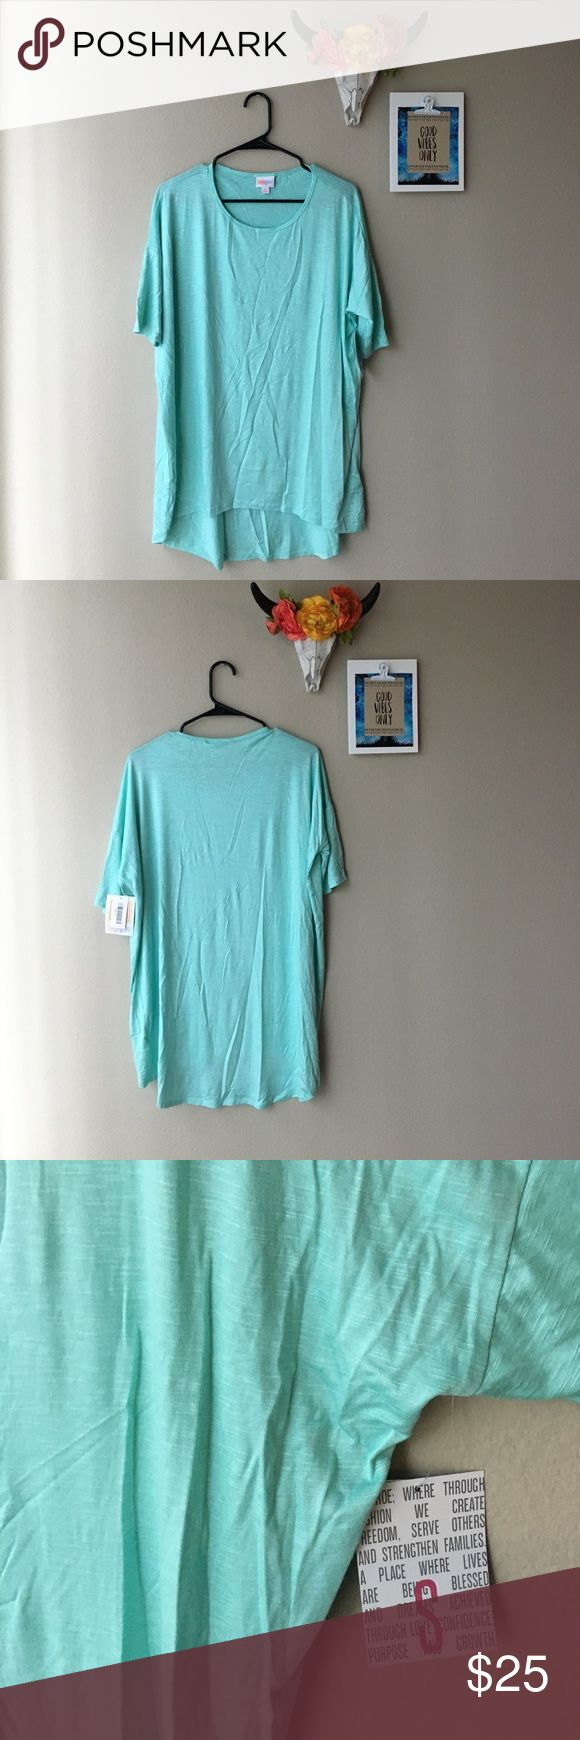 Small mint green top Small mint green lularoe Irma top. Never been worn, nothing wrong with it, just the wrong size. LuLaRoe Tops Tees - Short Sleeve